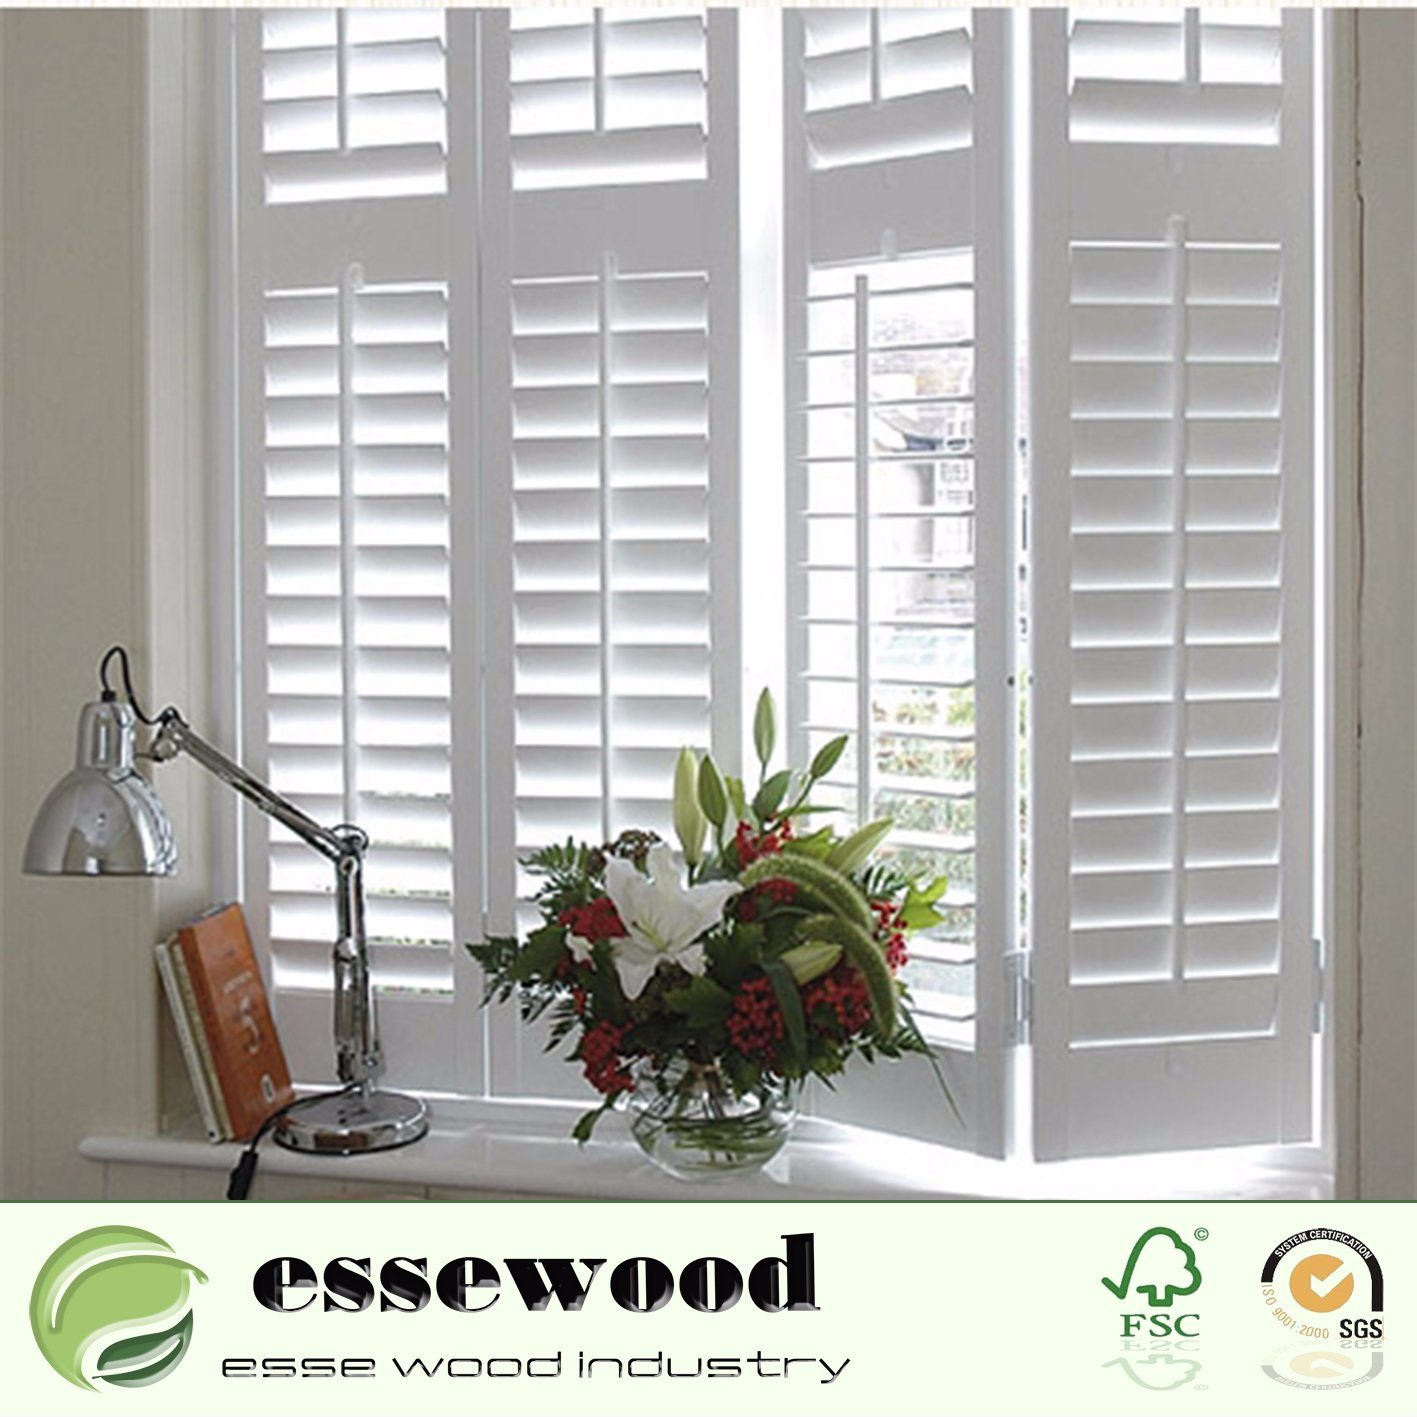 PVC Plastic Louver Shutter Windows Interior Shutter Sliding Shutter Door